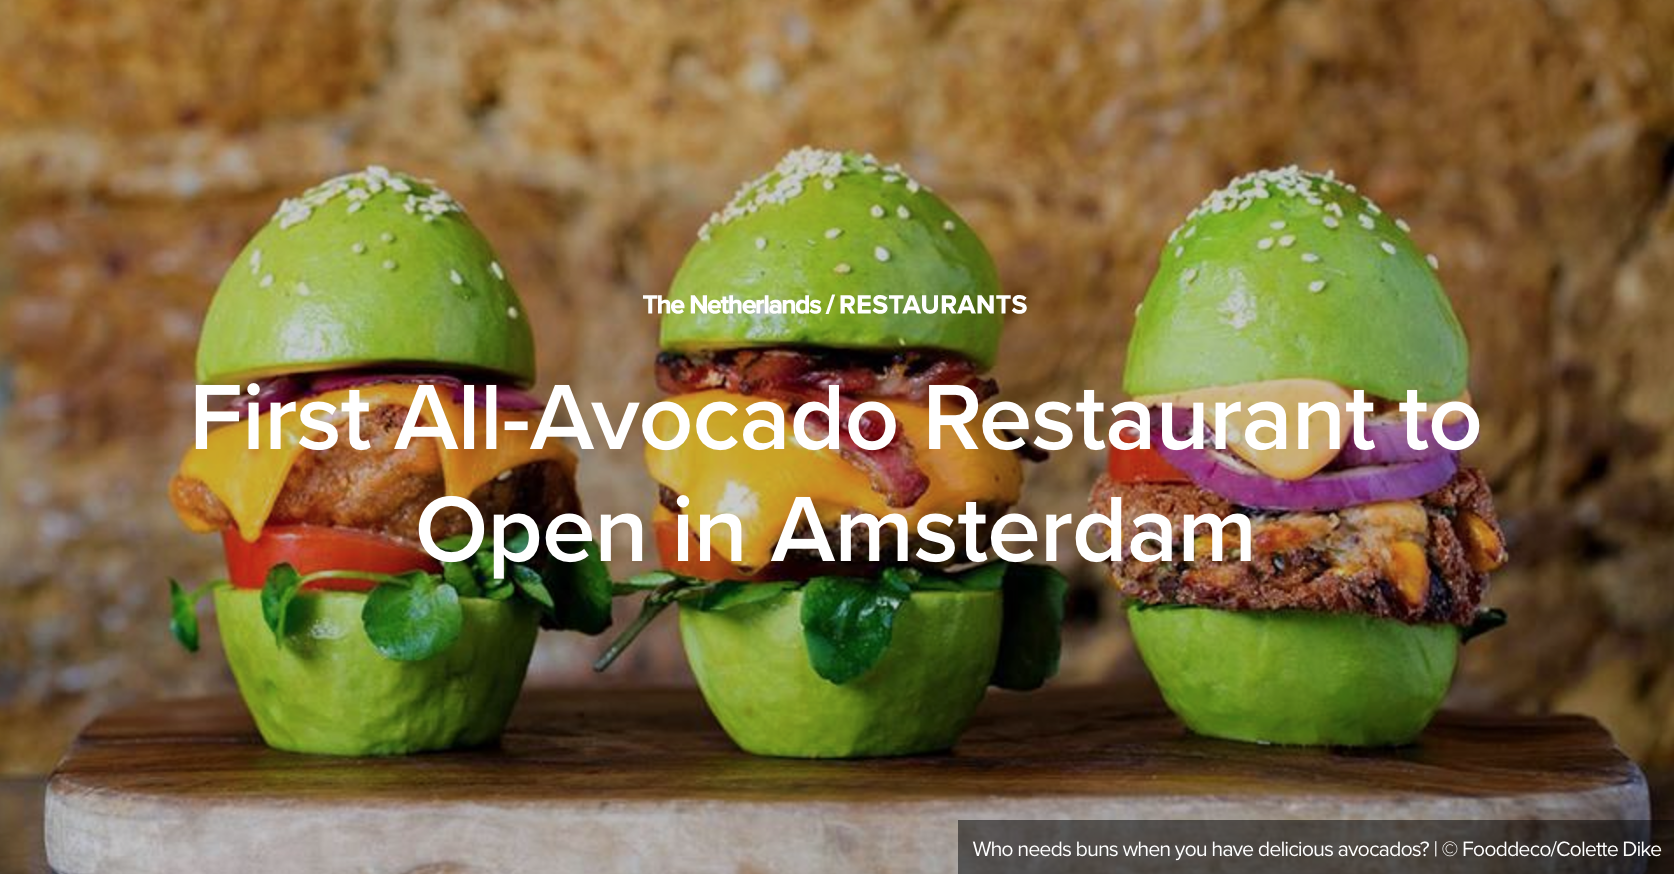 The First Avocado Café in the World is Coming Soon – Spring of 2017